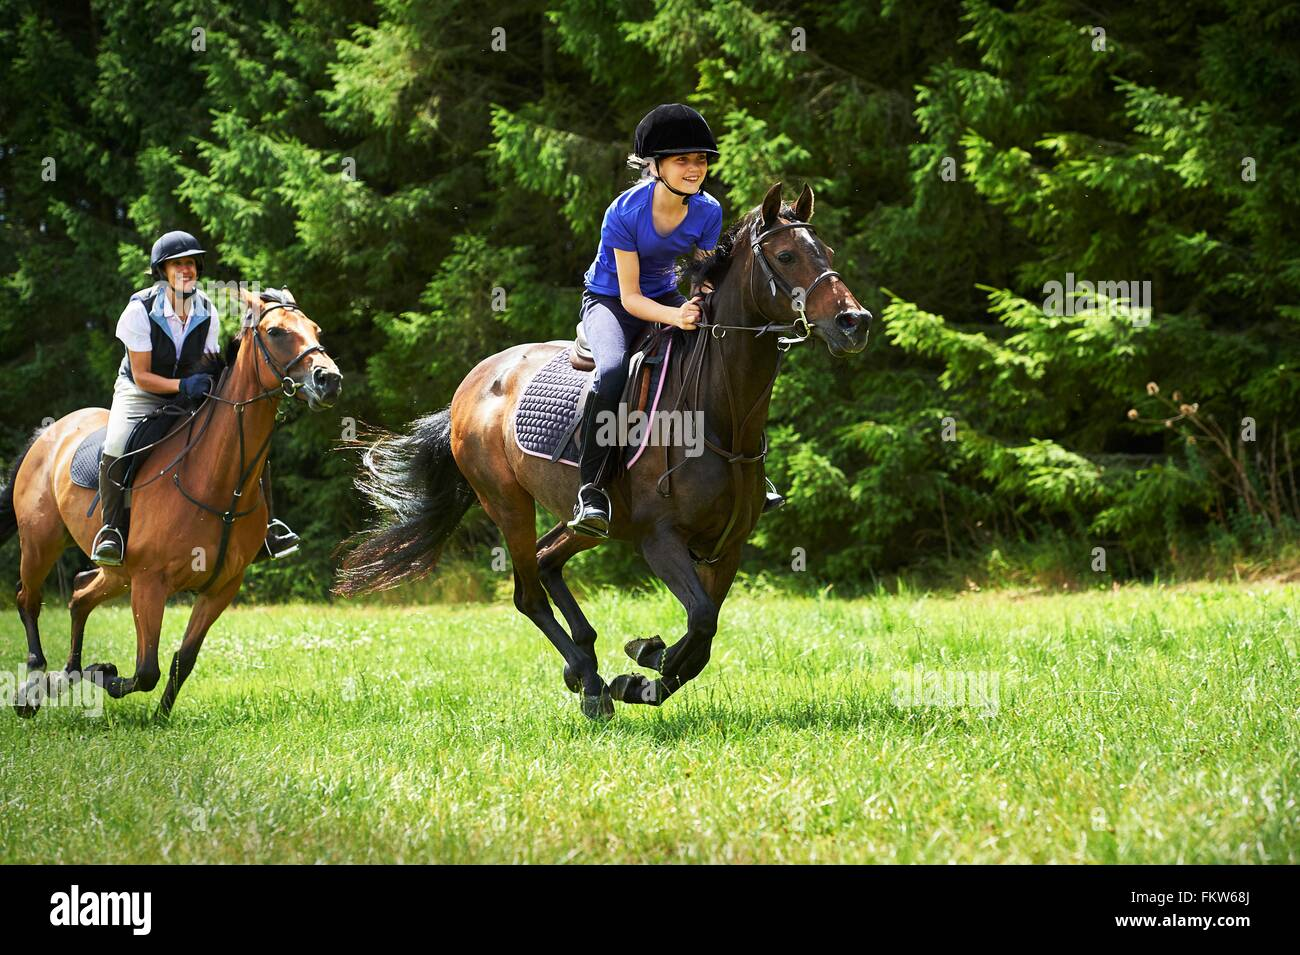 Mature woman and girl galloping on horse Stock Photo